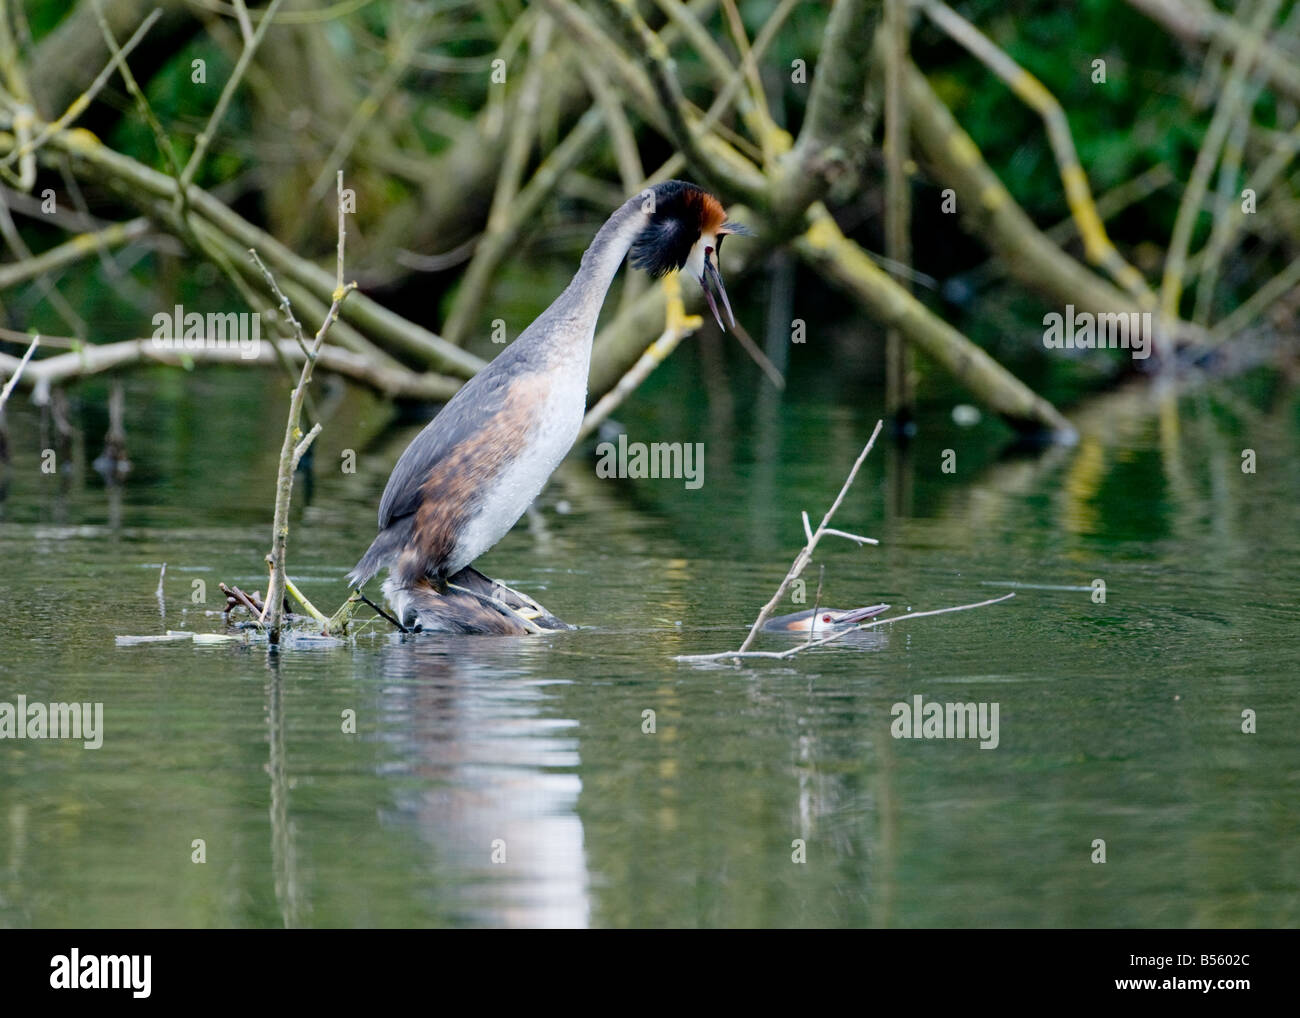 Great Crested Grebes (Podiceps cristatus) mating in spring time in an English lake - Stock Image